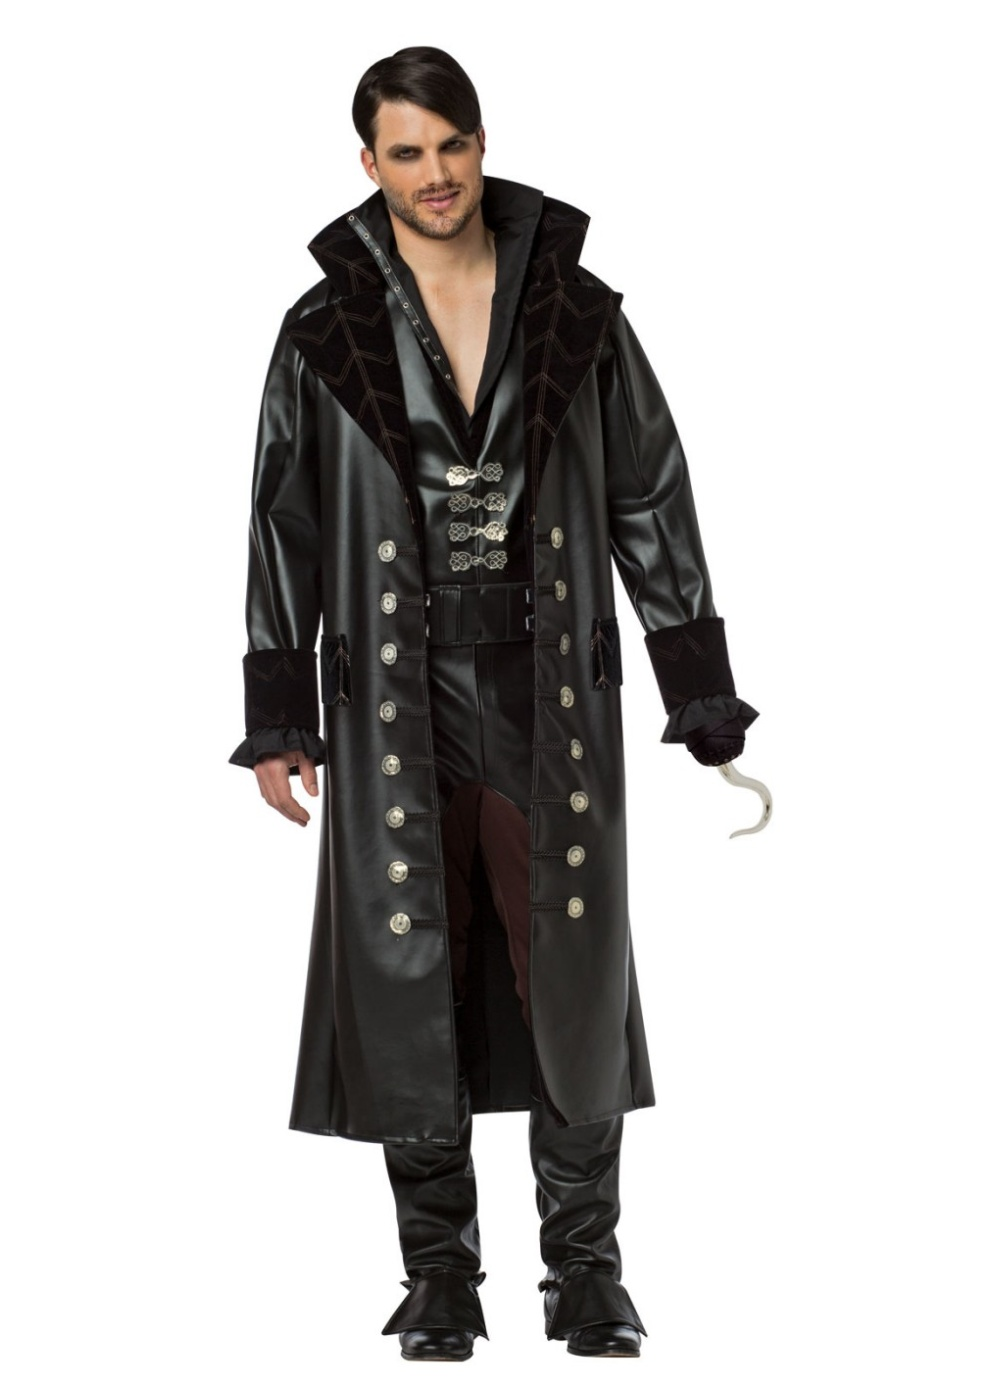 Halloween Costumes From Once Upon A Time